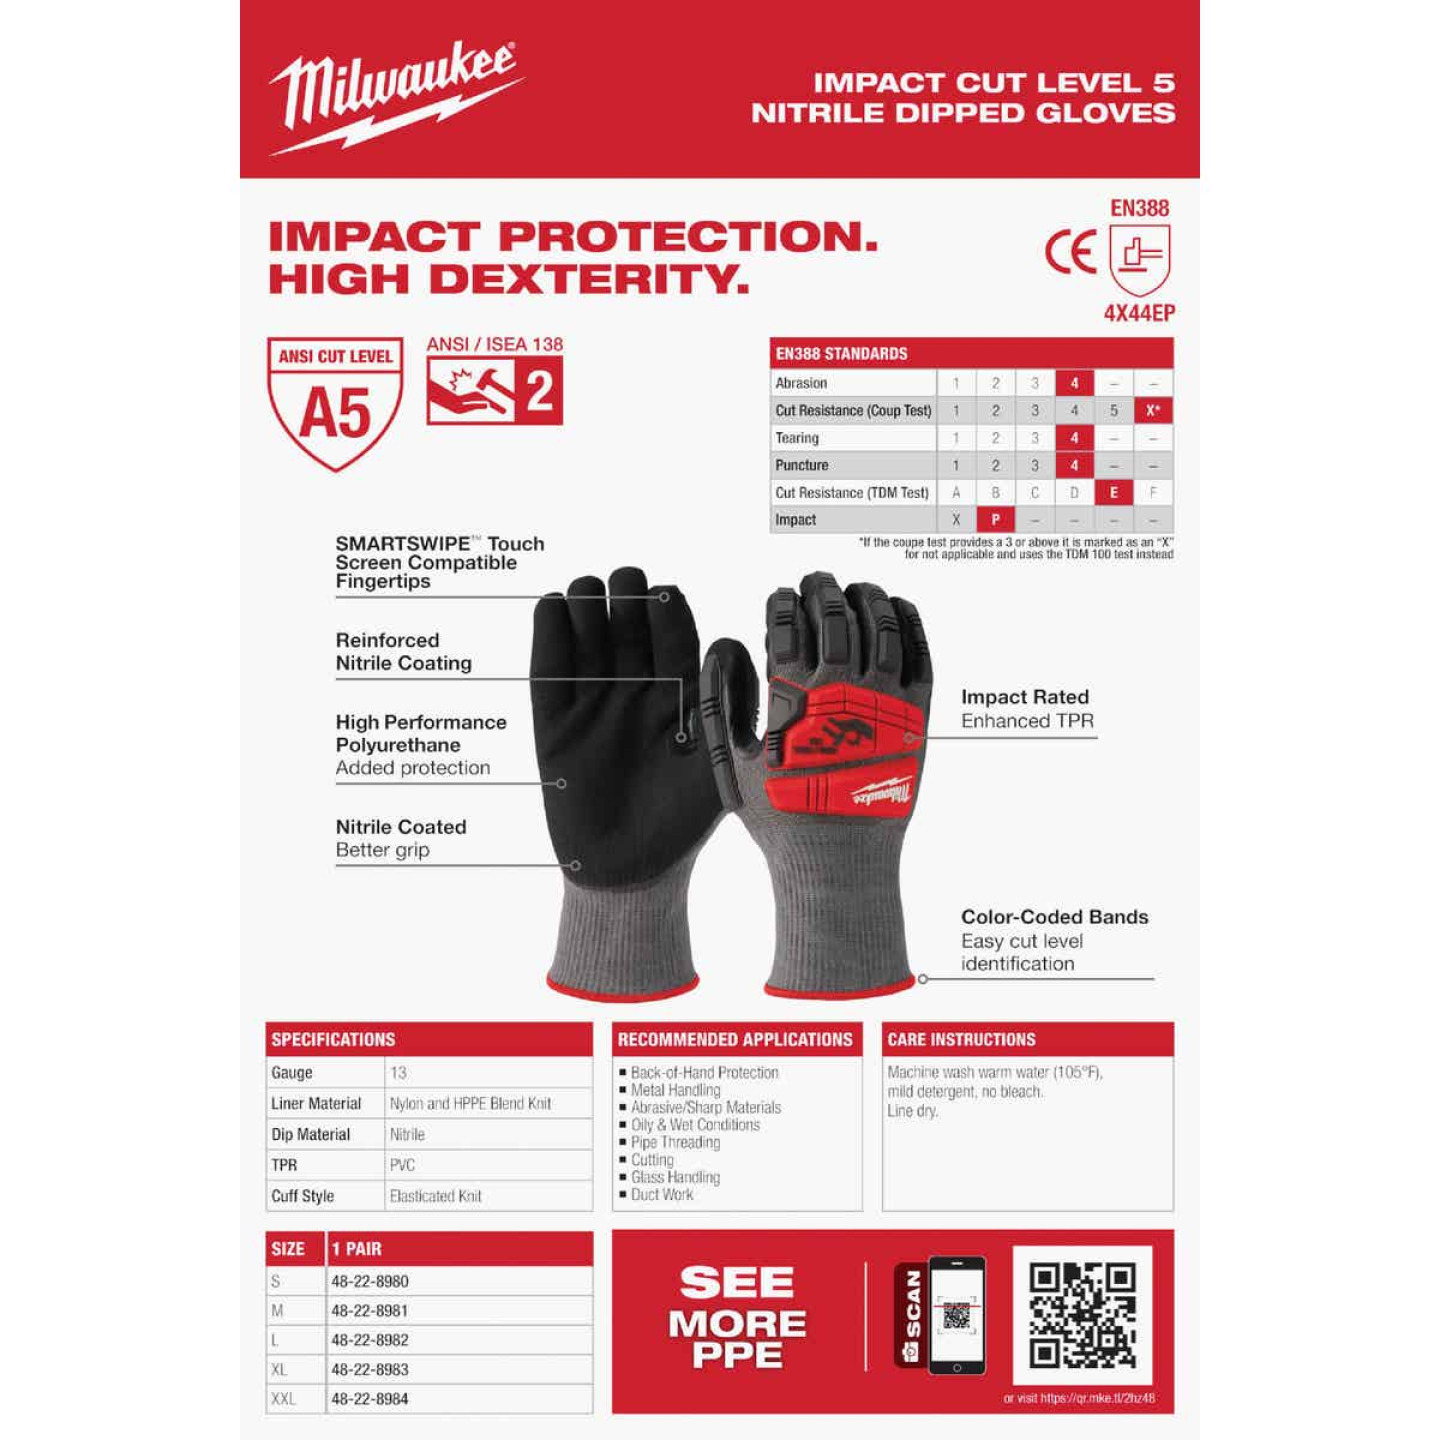 Milwaukee Impact Cut Level 5 Men's XL Nitrile Dipped Work Gloves Image 5